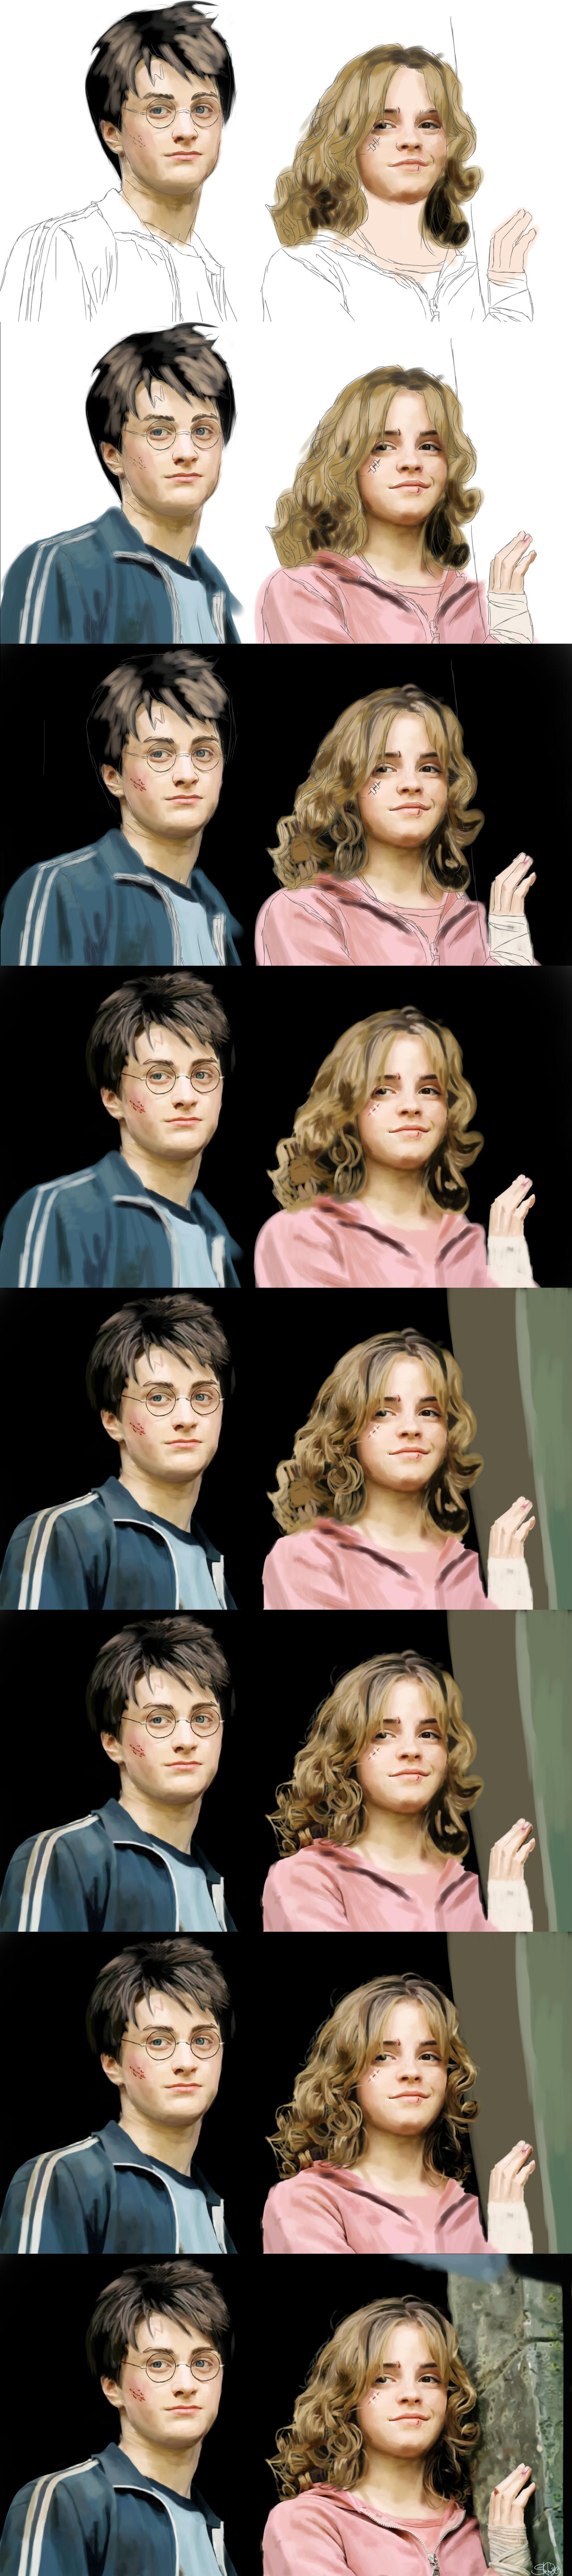 Azkaban: Harry and Hermione Process by superninjadeluxe